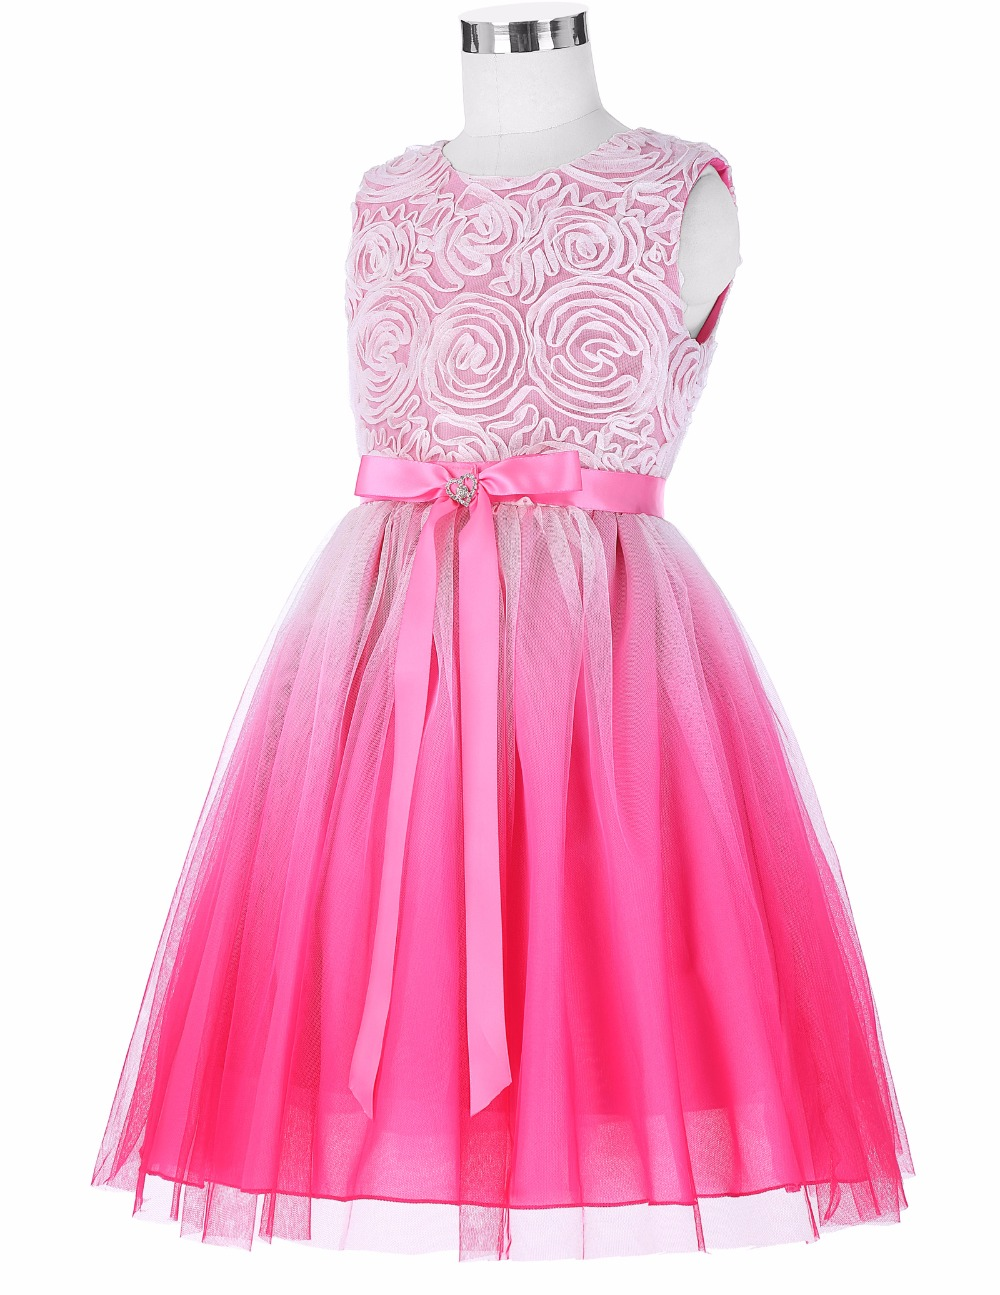 Grace Karin 2017 Flower Girl Dresses Luxury Tulle Flower Party Dresses For Wedding Party First Communion Dresses With Bow Ribbon 6